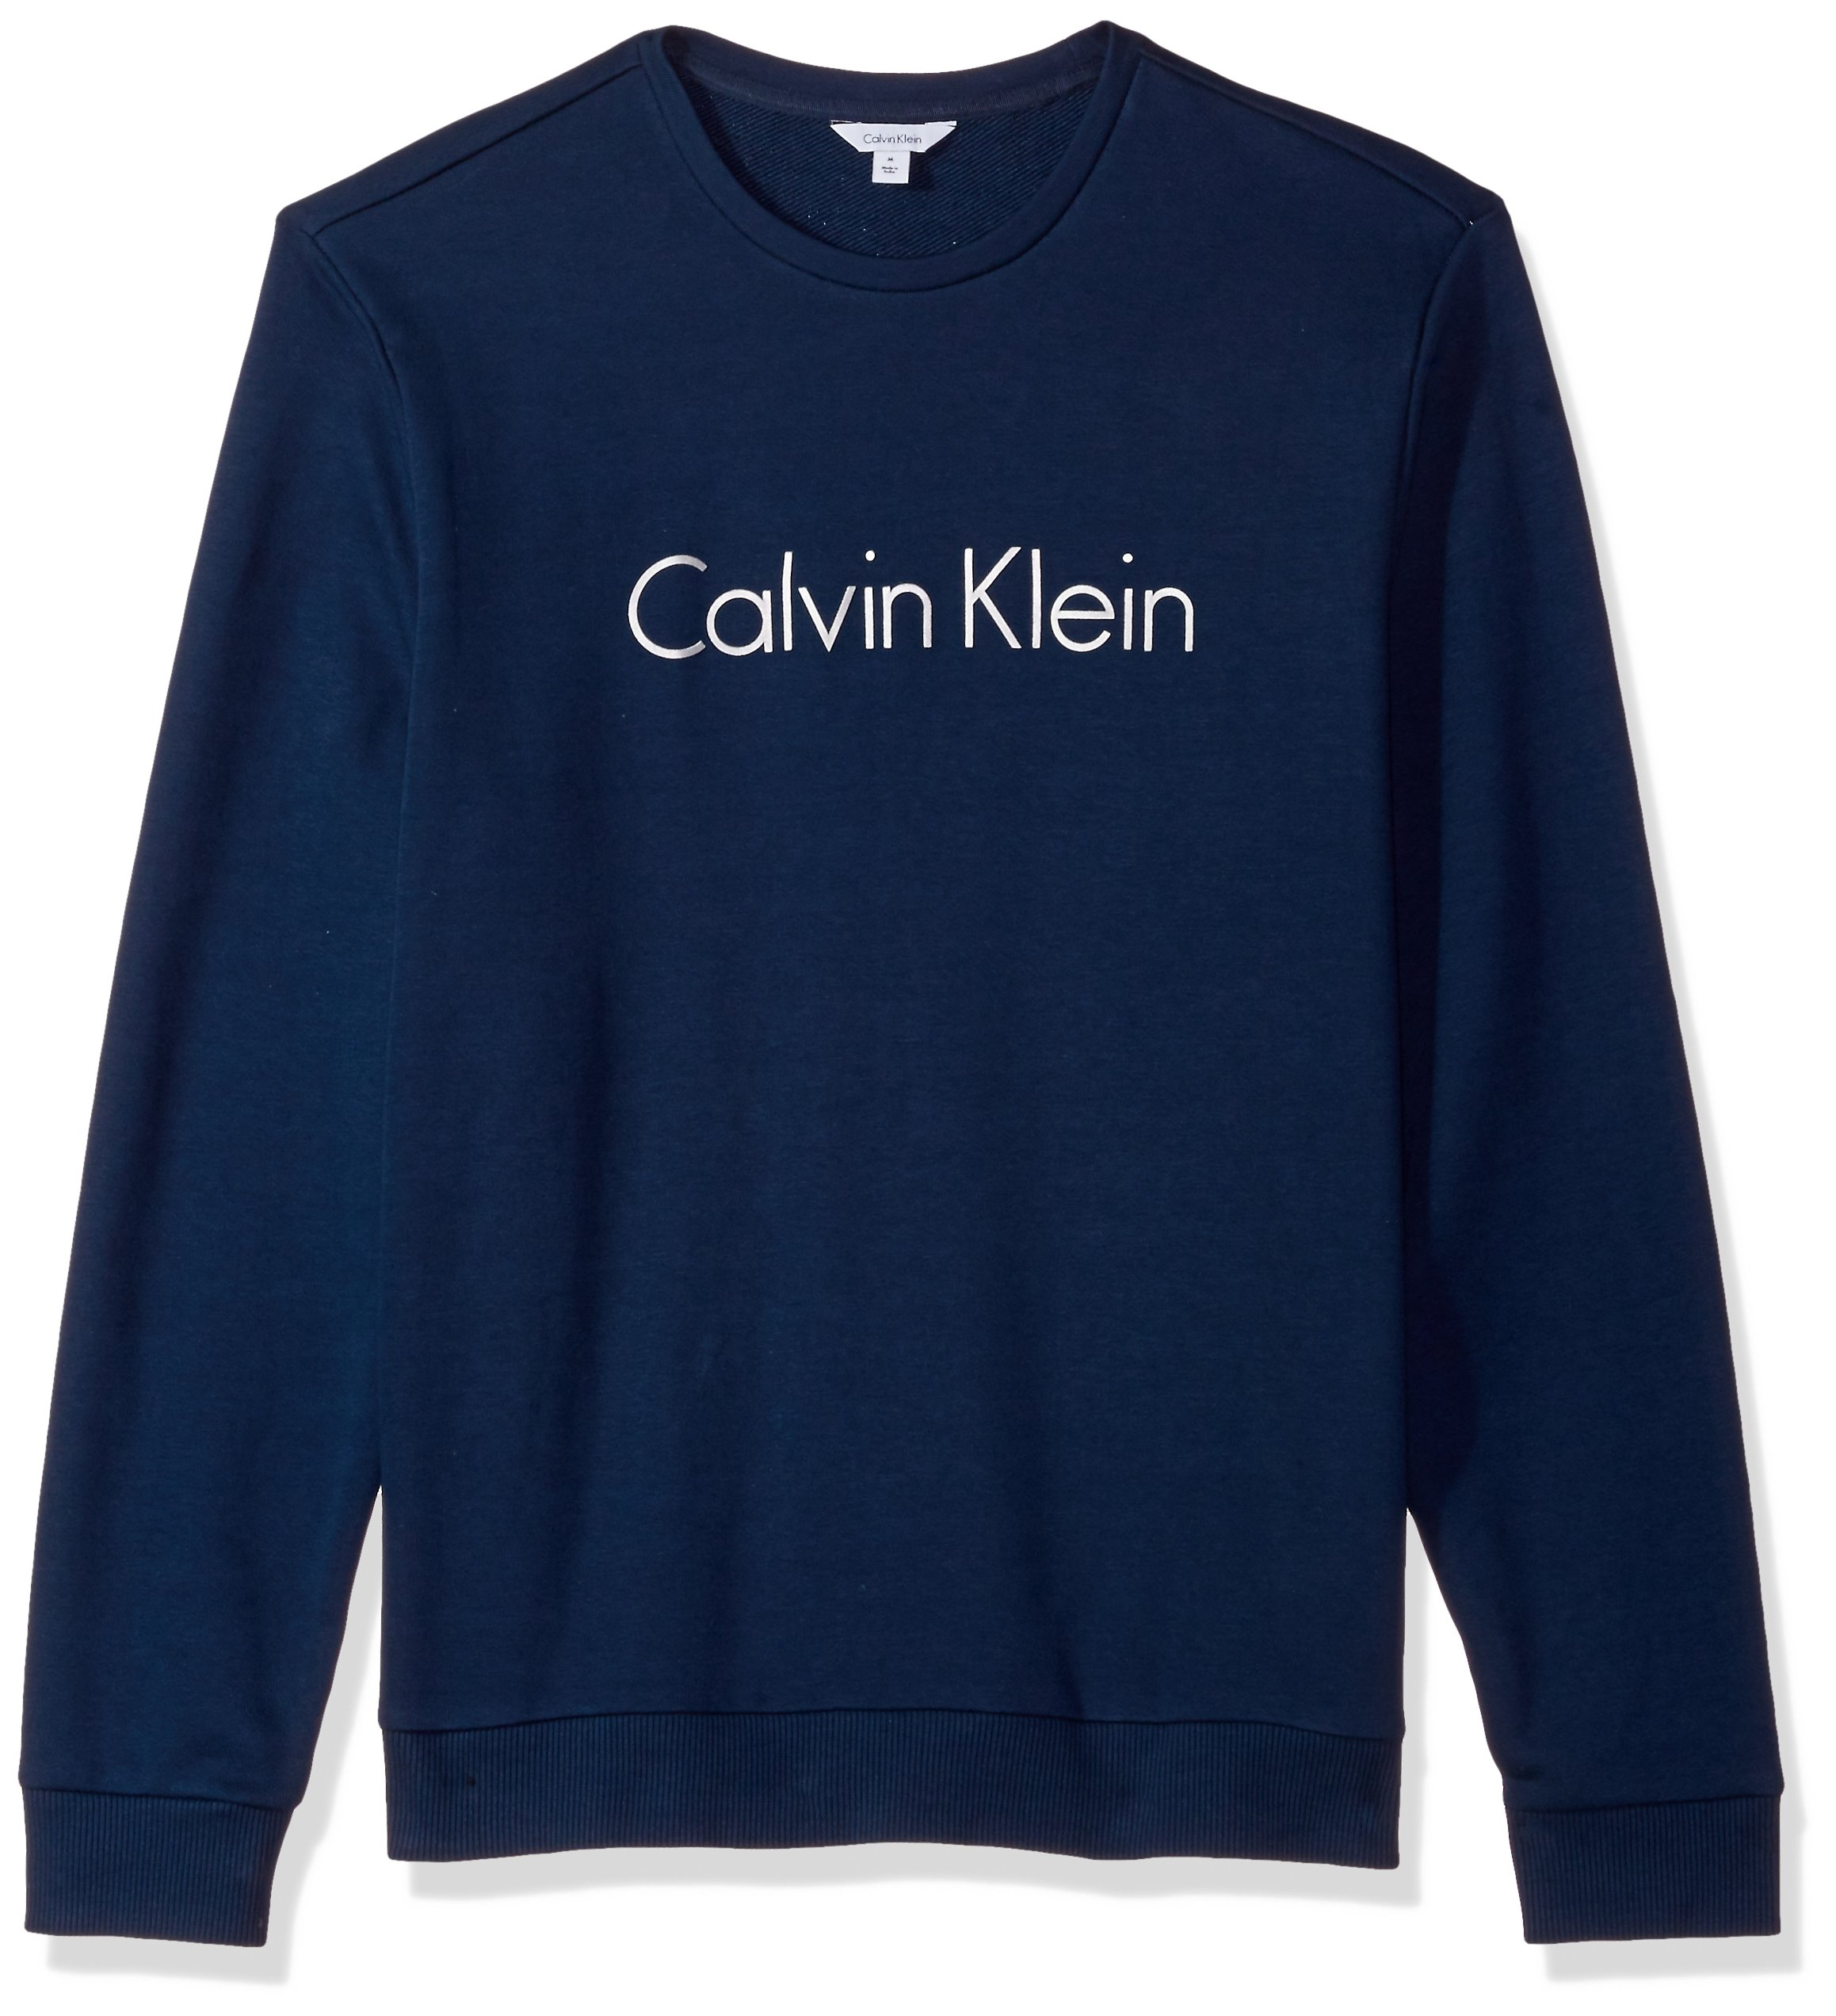 Calvin Klein Men's Logo Crew Neck Sweatshirt, Atlantis, Medium